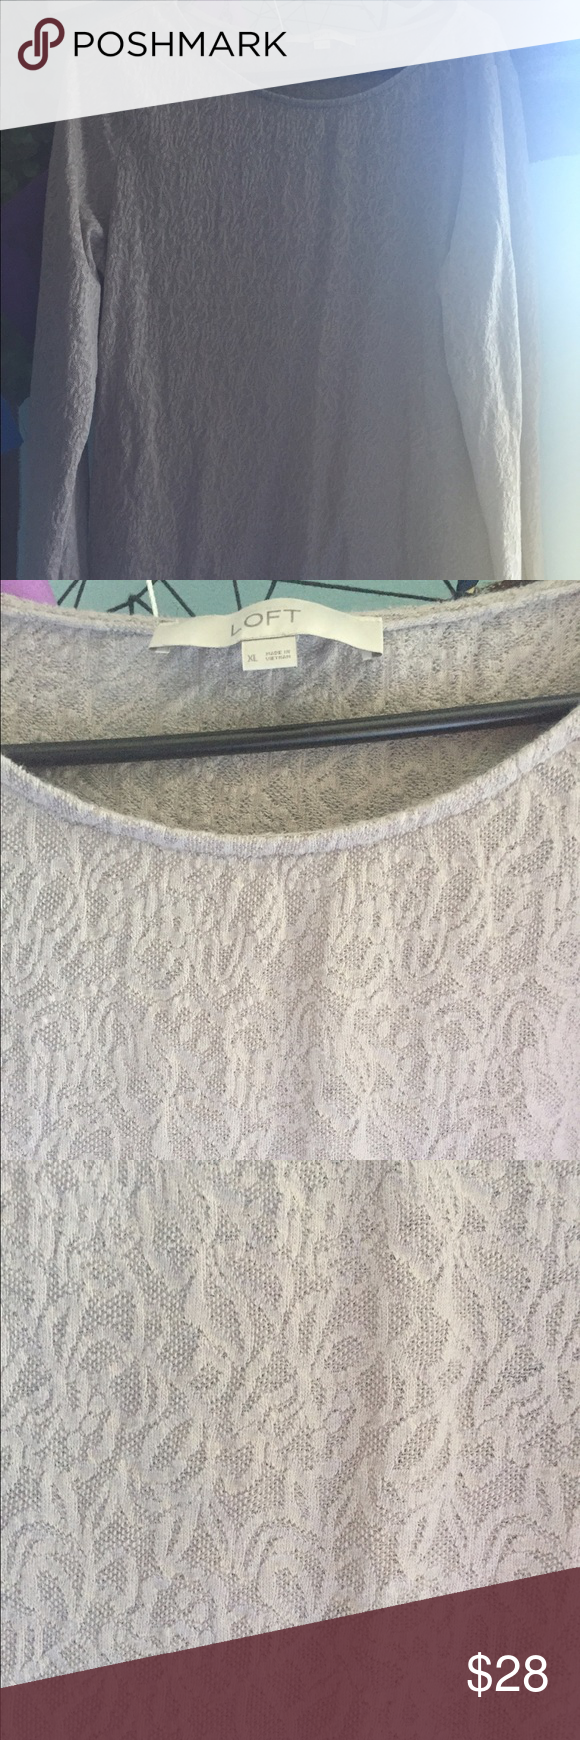 LOFT taupe XL long sleeved lace top Beautiful lace taupe XL Loft long sleeved top, great for work or under a suit LOFT Tops Blouses